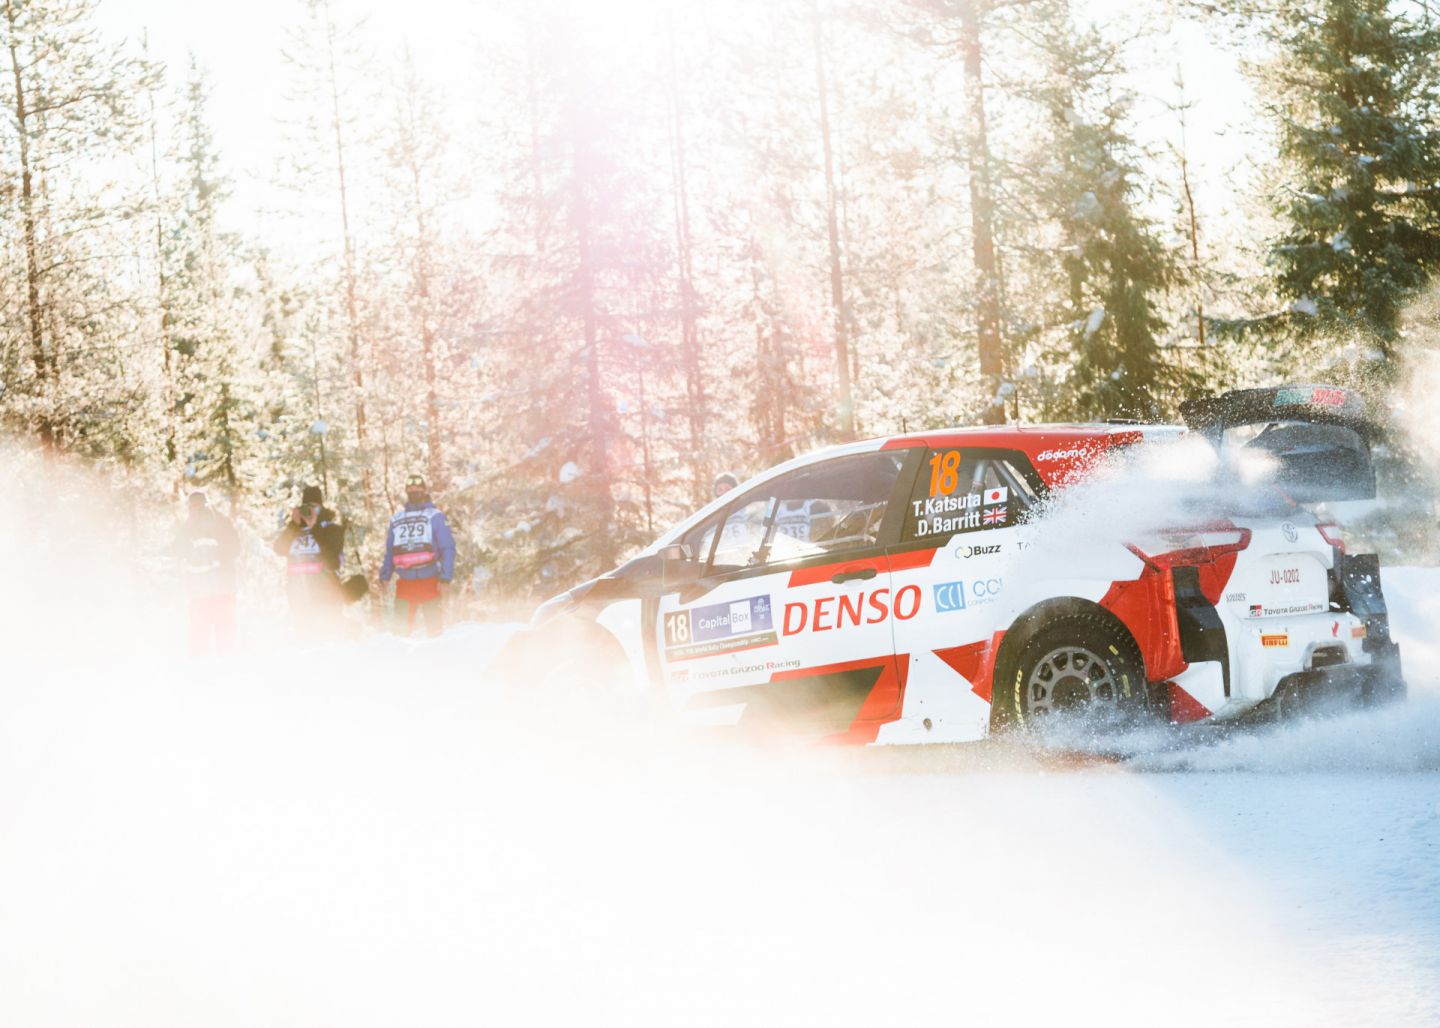 Arctic Rally Finland in the town of Rovaniemi